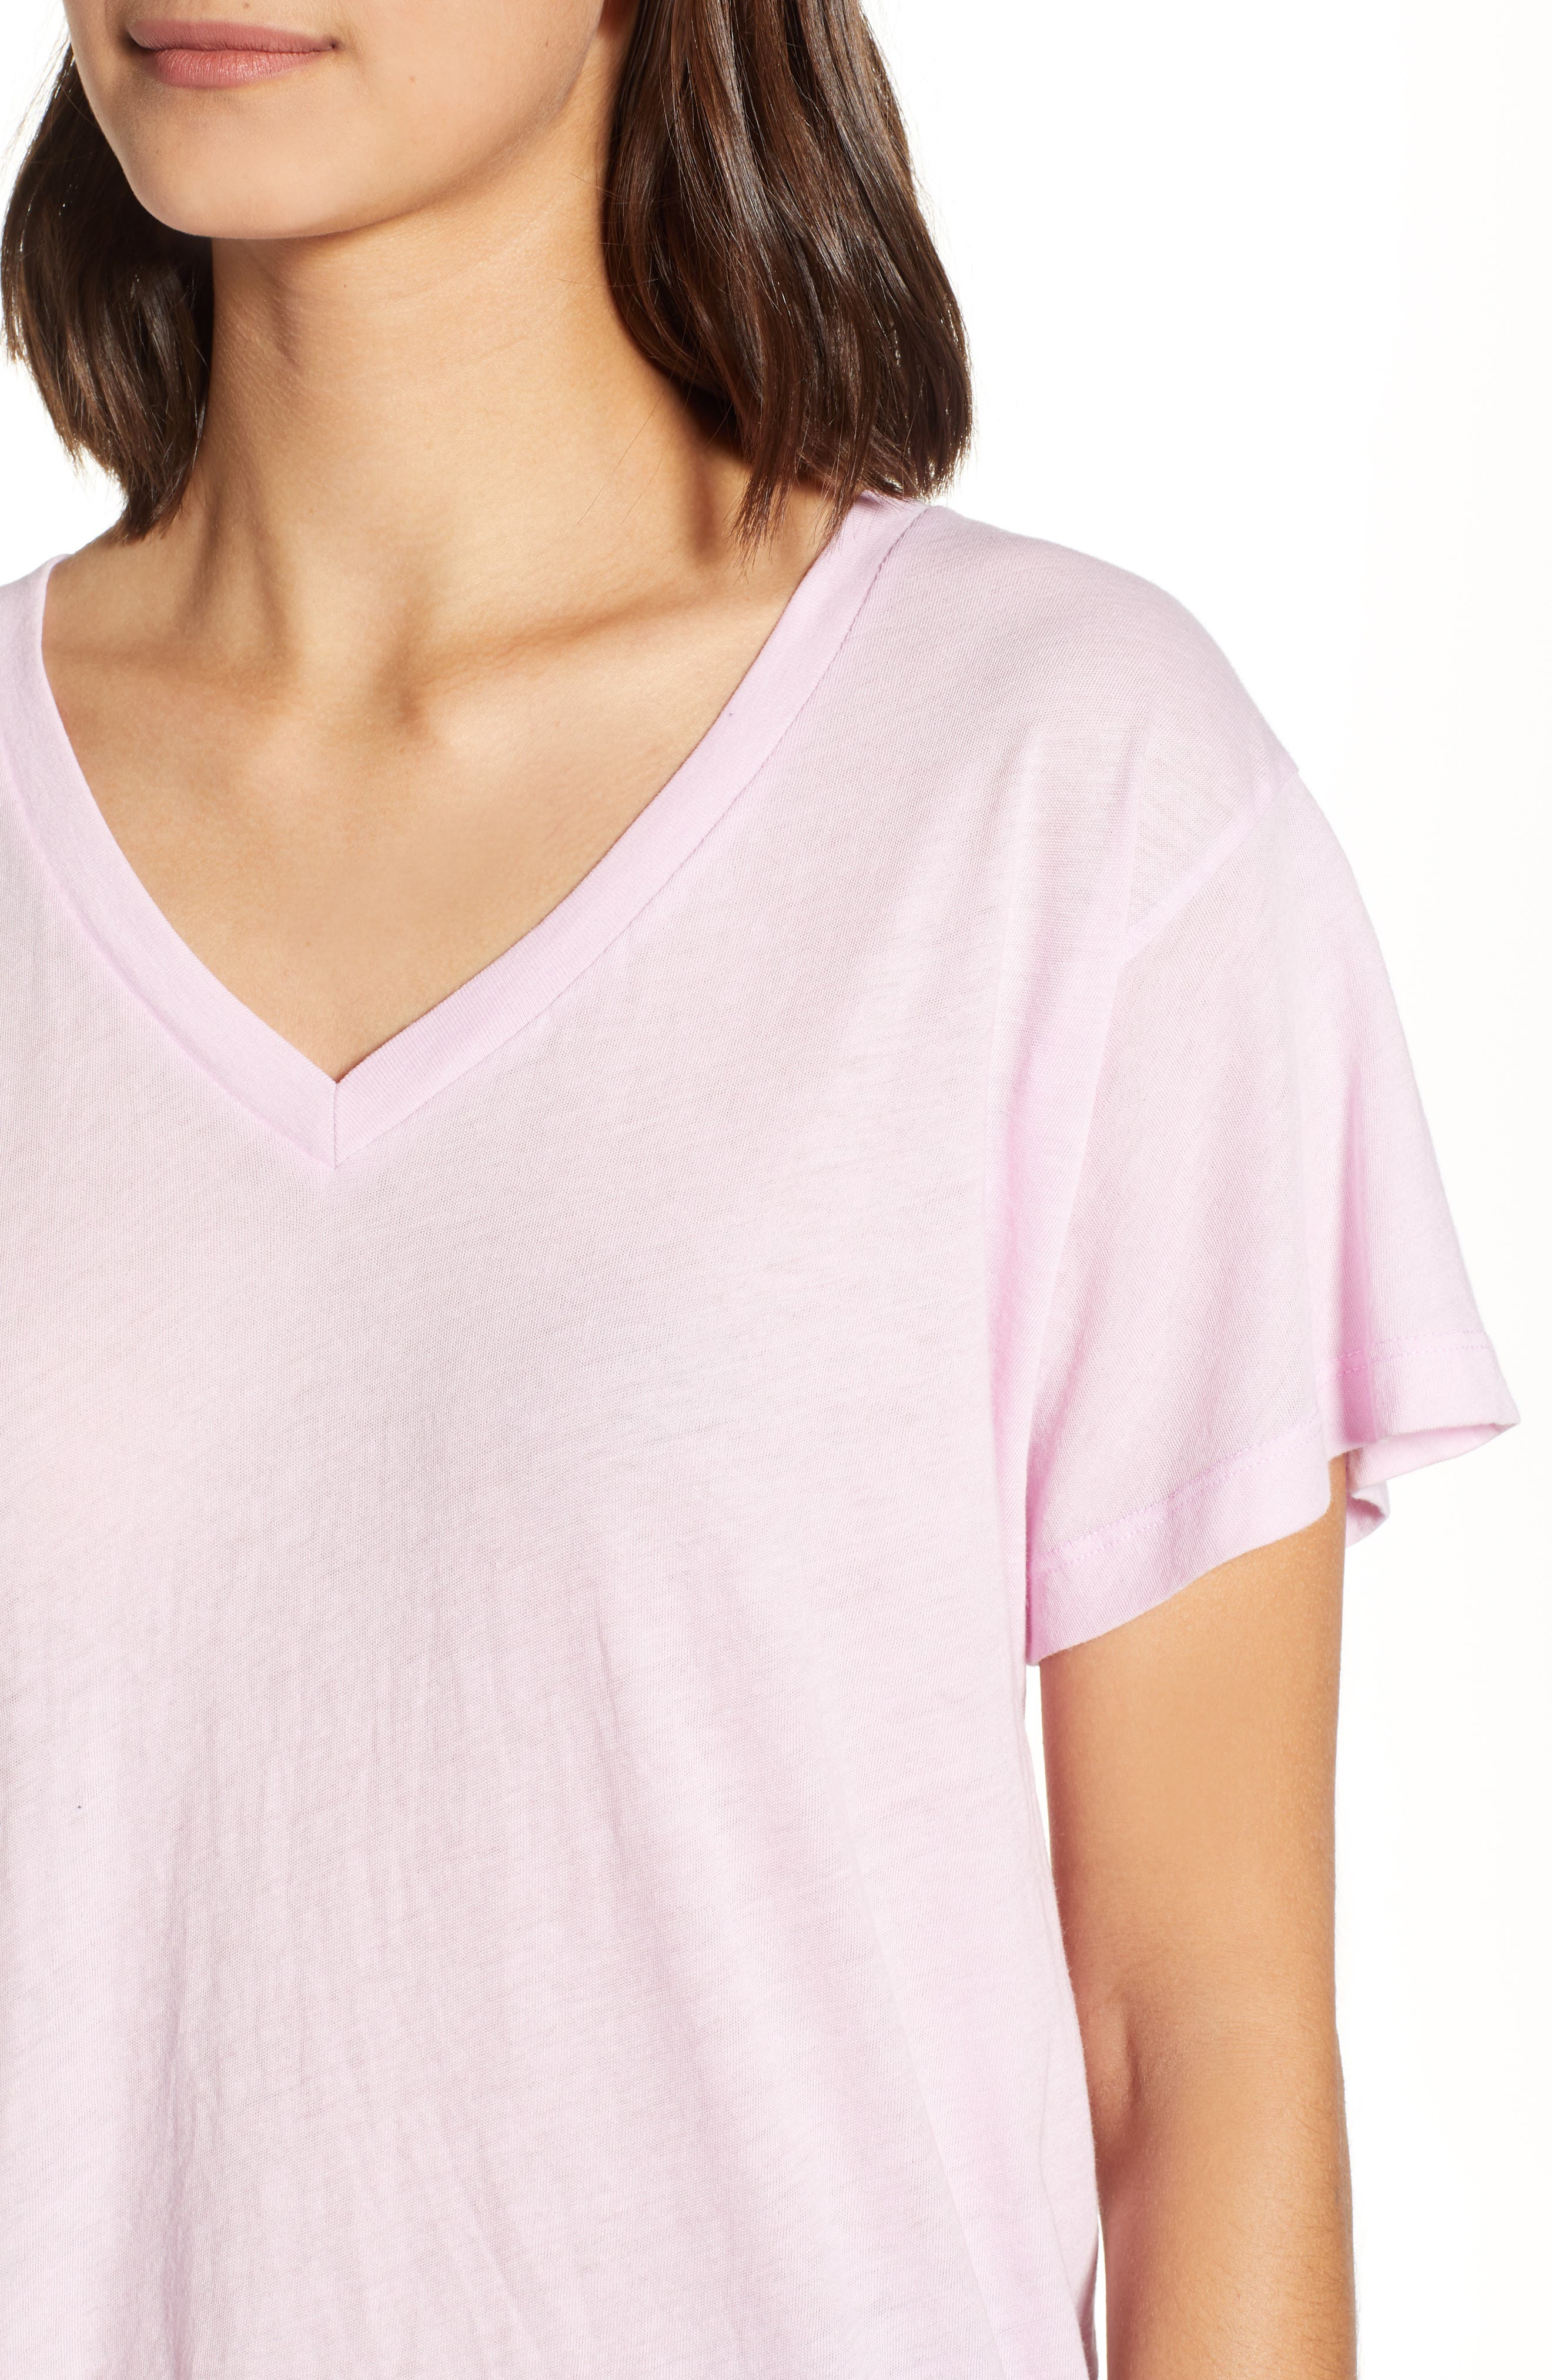 Romeo V-Neck Tee,                             Alternate thumbnail 4, color,                             ORCHID